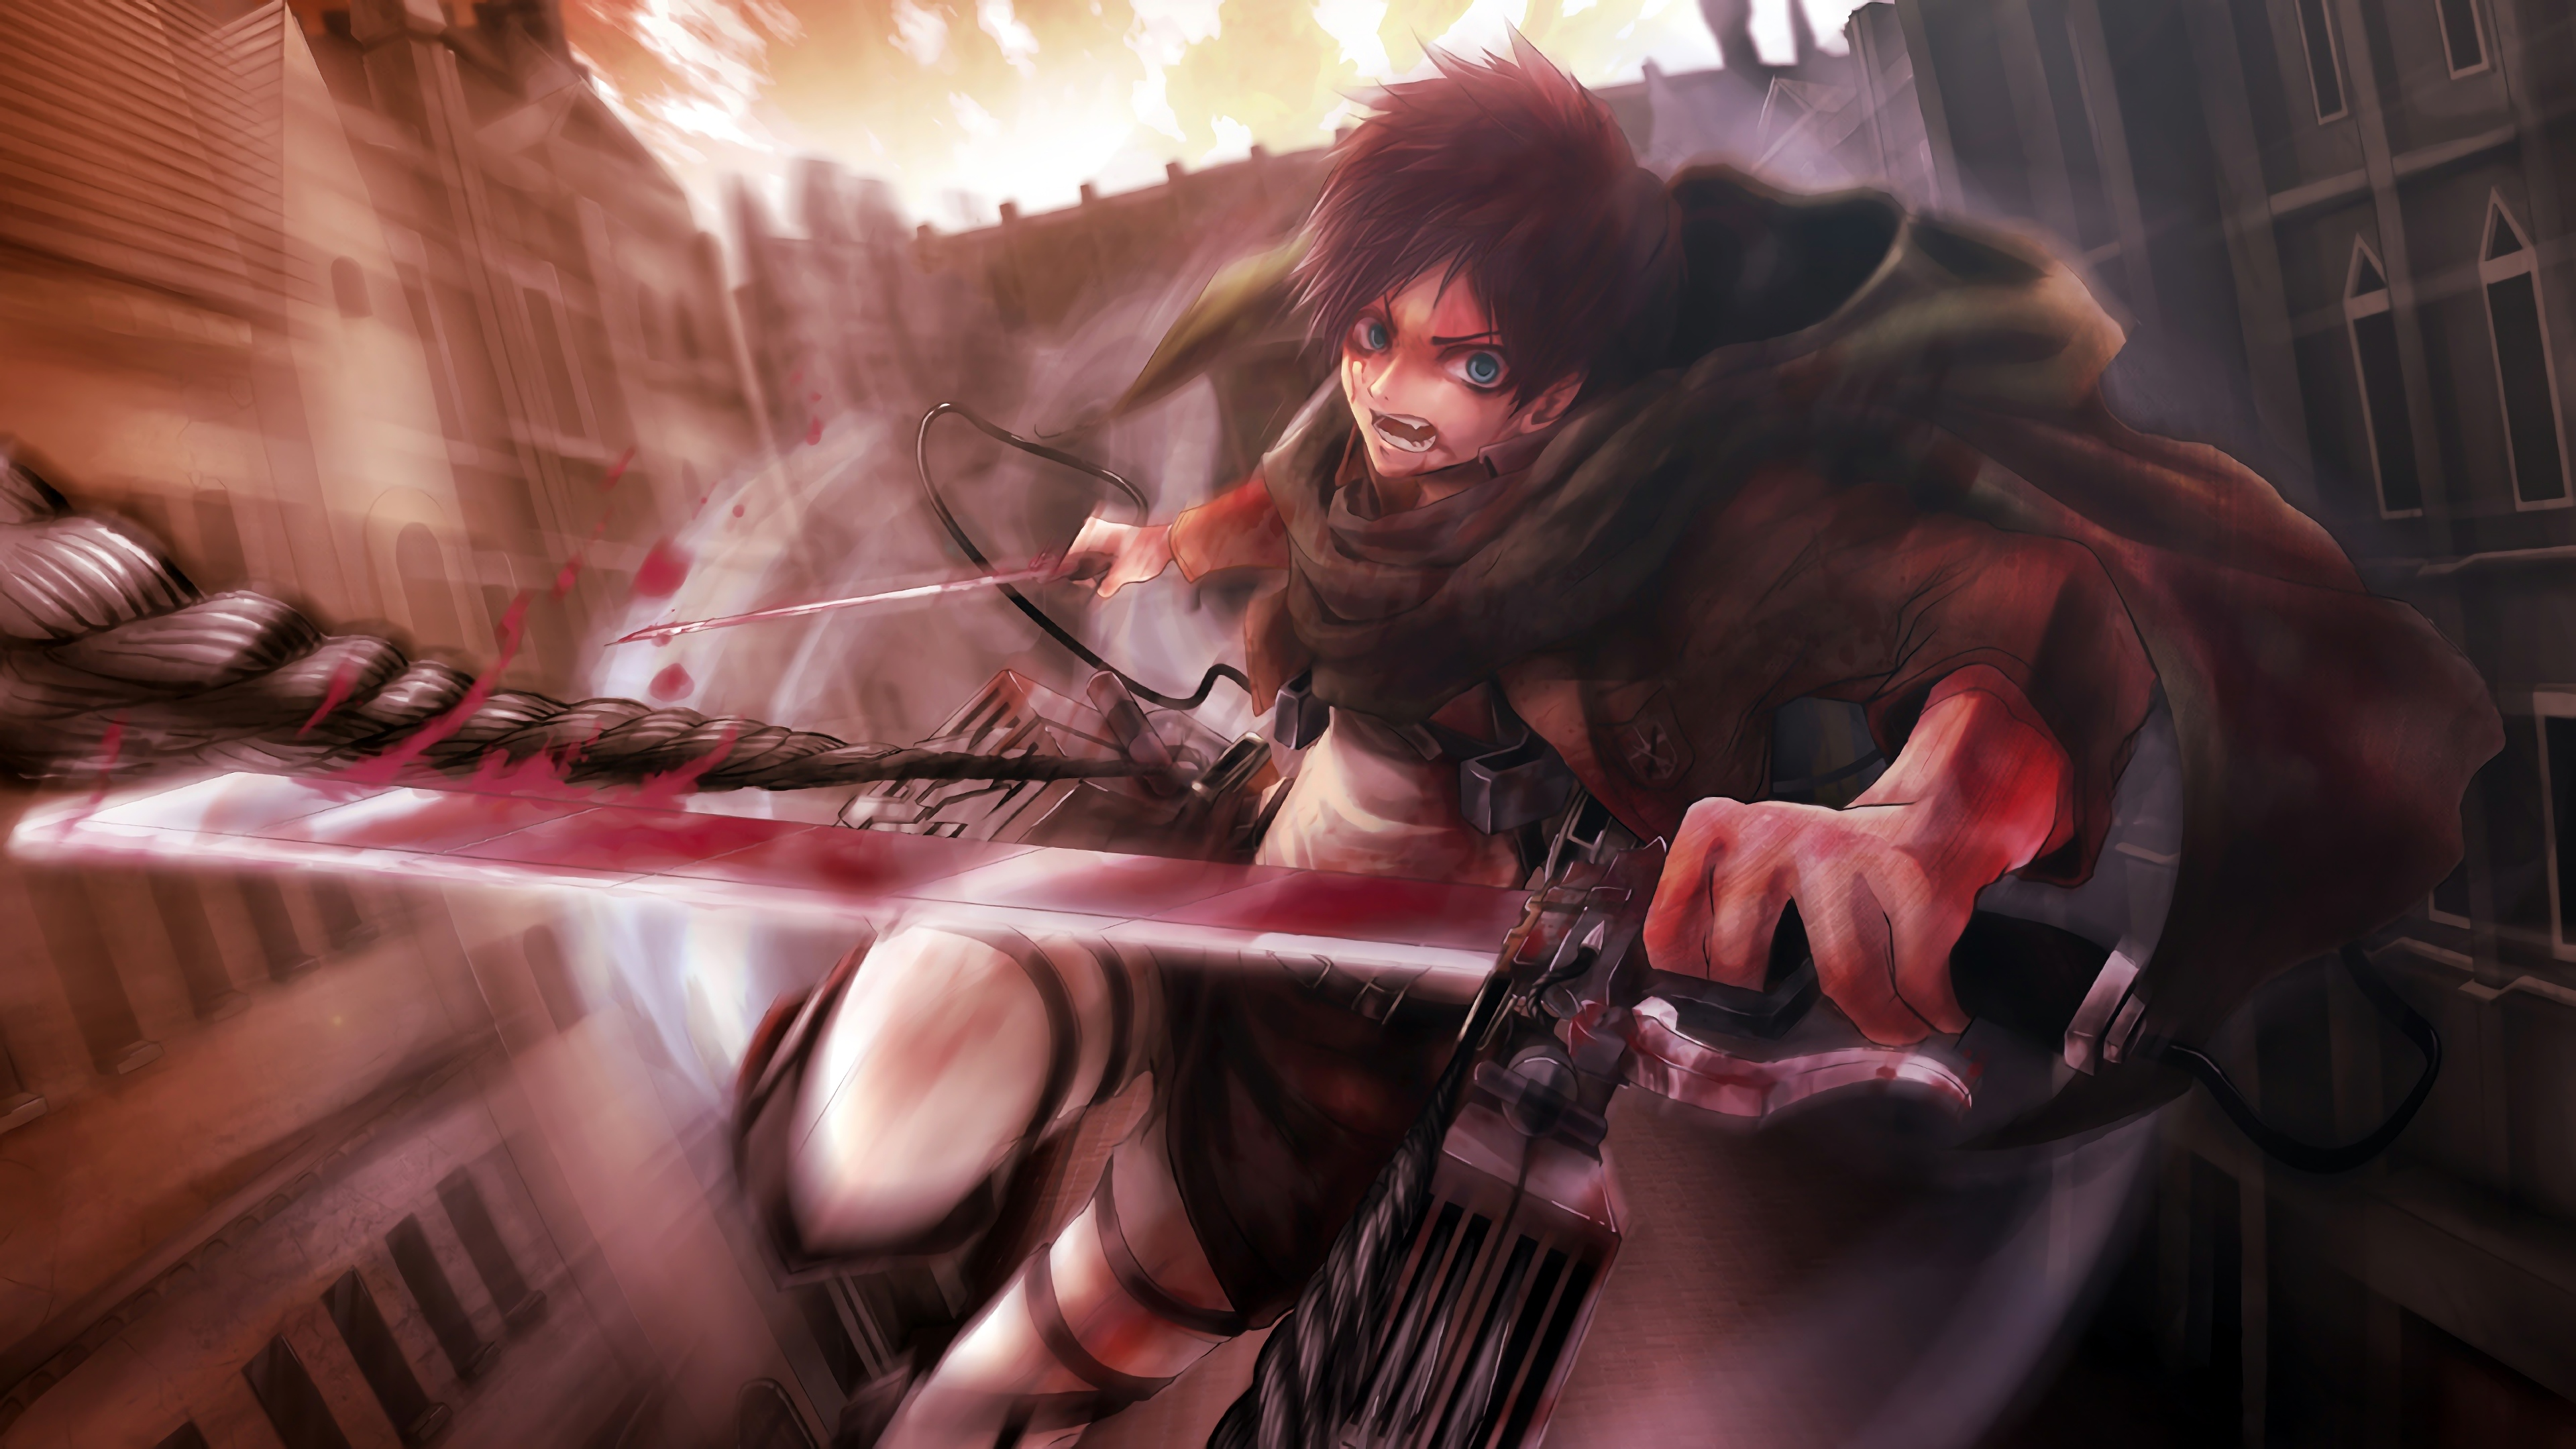 Attack On Titan 4k Ultra Hd Wallpaper Background Image 3840x2160 Id 1015812 Wallpaper Abyss